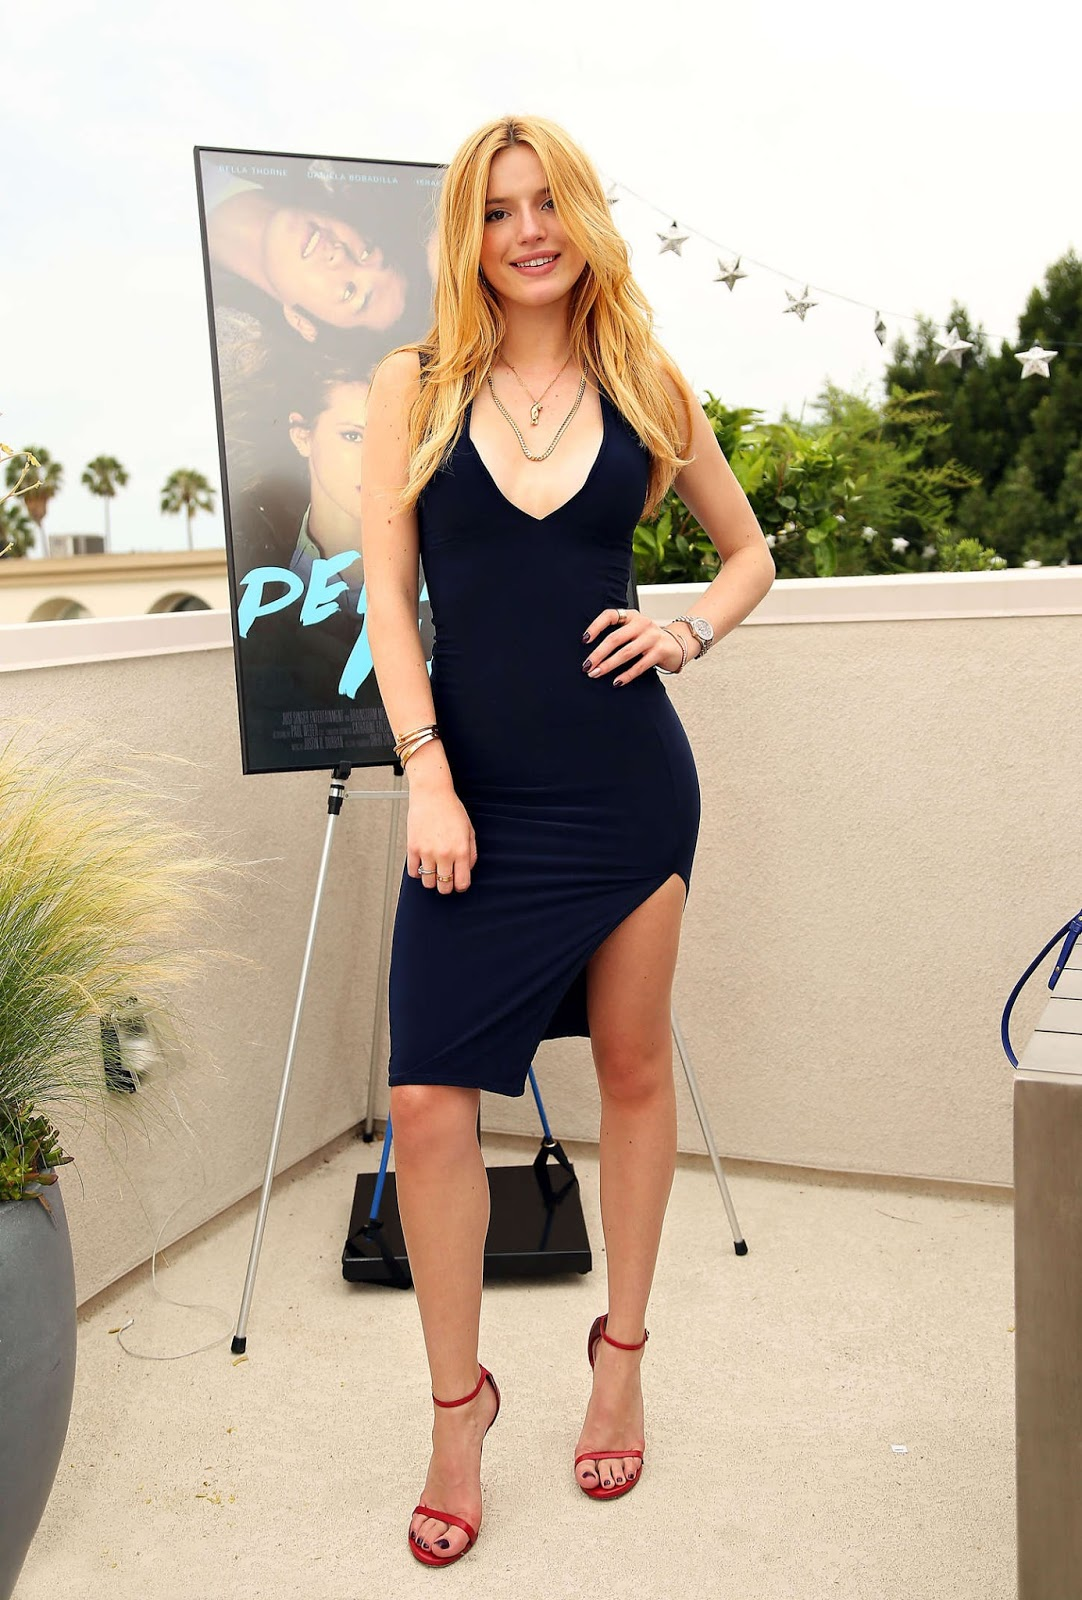 Bella Thorne in a plunging dress at the 'Perfect High' photocall in LA